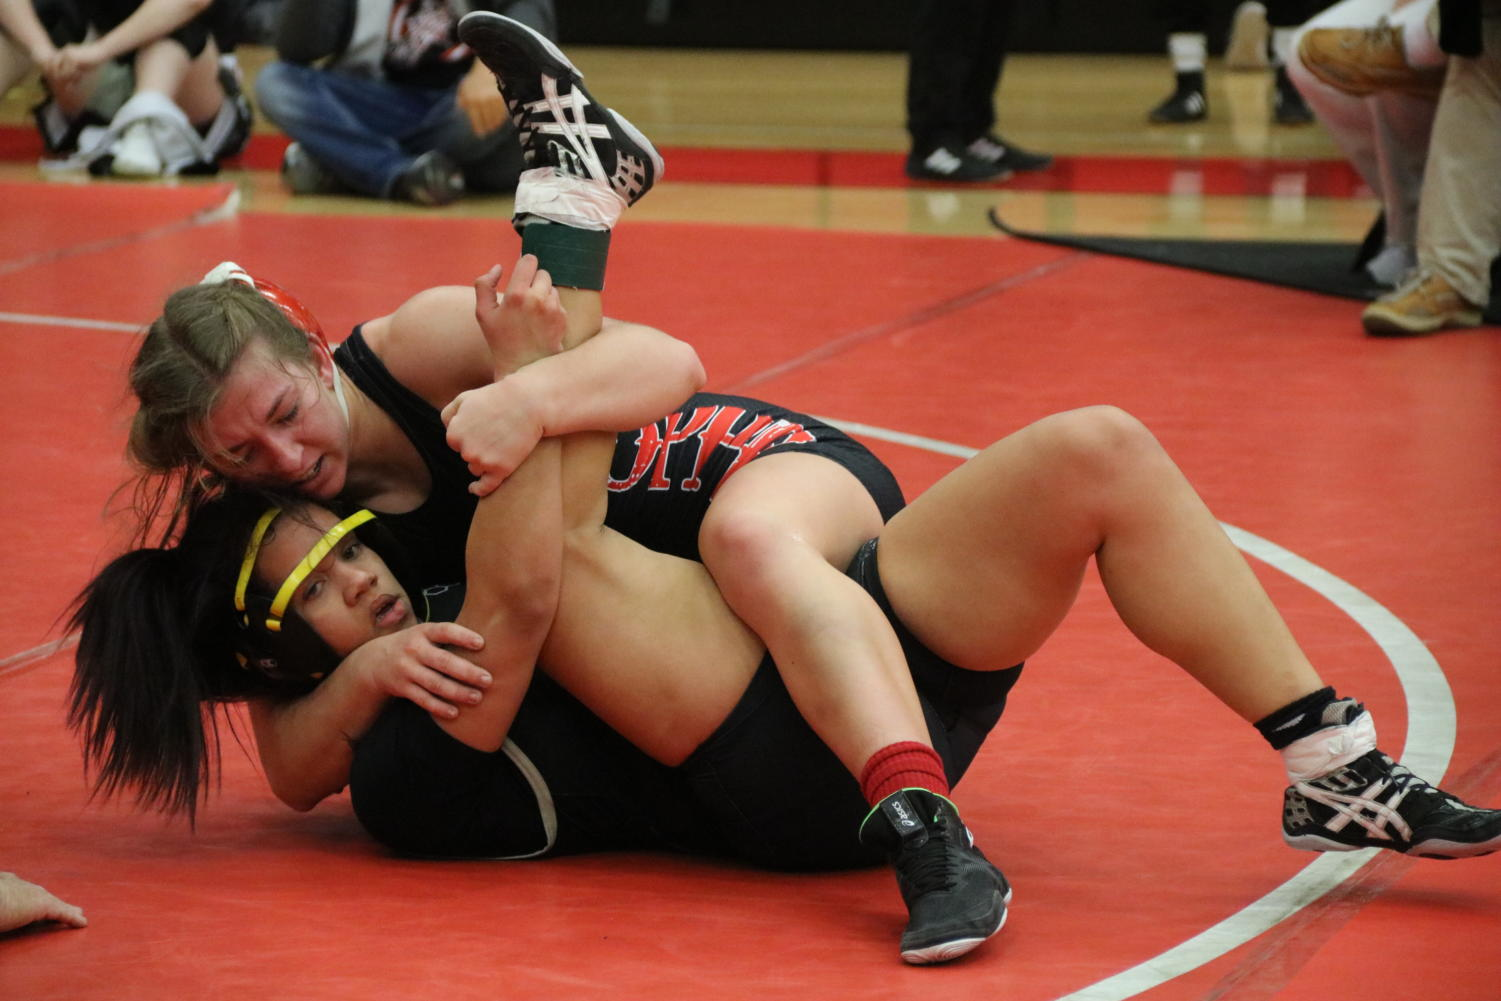 Coppell senior Brooke Massaviol tries to pin junior Kiya Tillery from The Colony. The Cowgirls placed first overall in the Knockout Sportswear Cowgirl Classic on Friday in the CHS Arena.